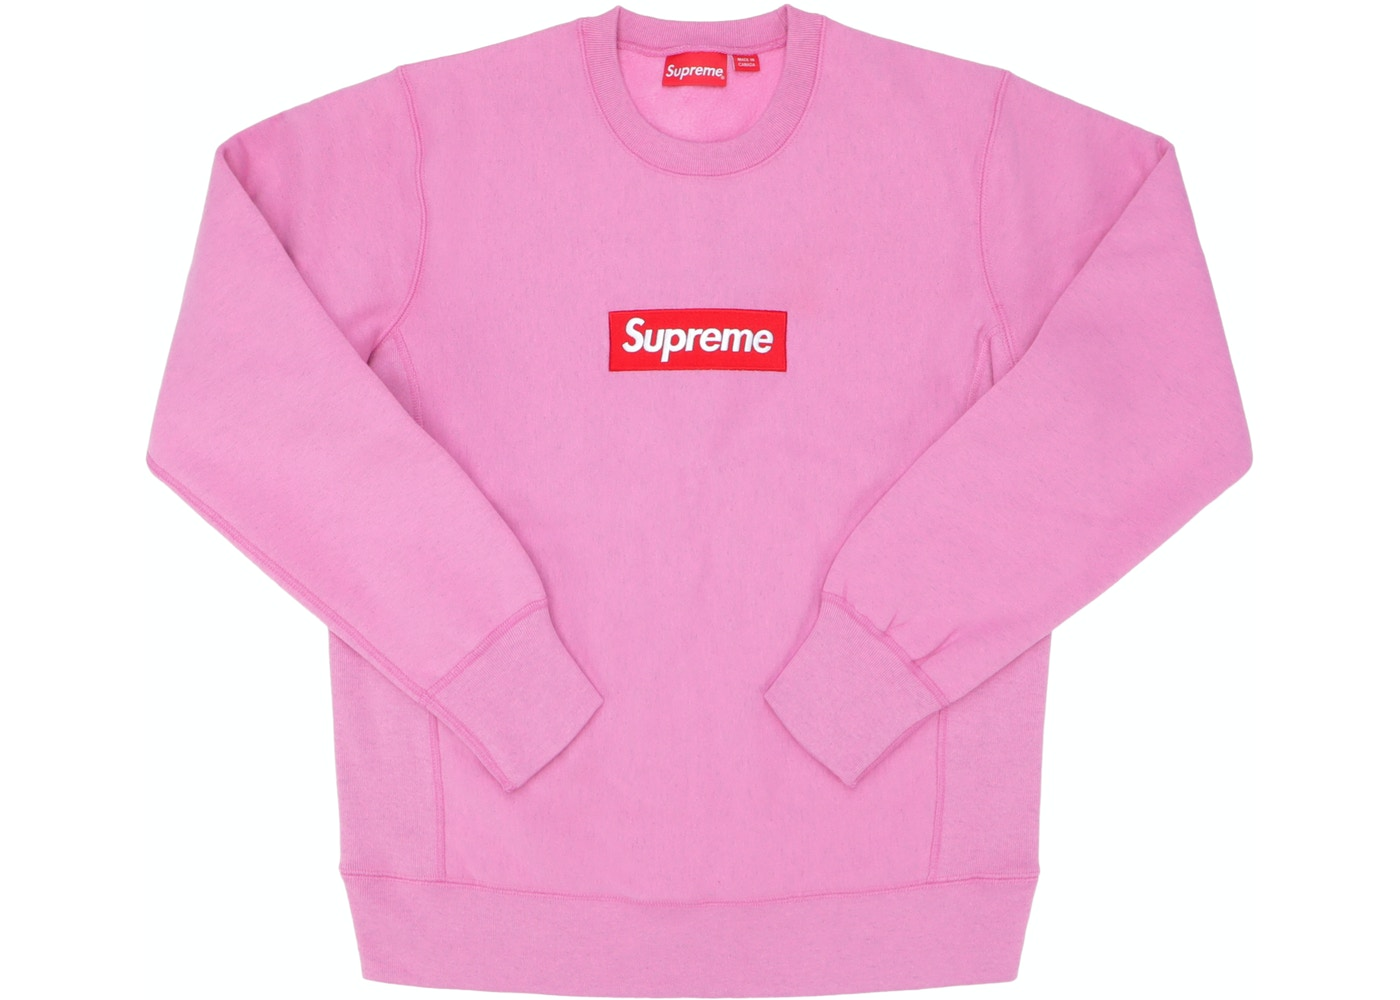 huge selection of ee0e5 79098 Supreme Box Logo Crewneck (FW15) Heather Pink - FW15